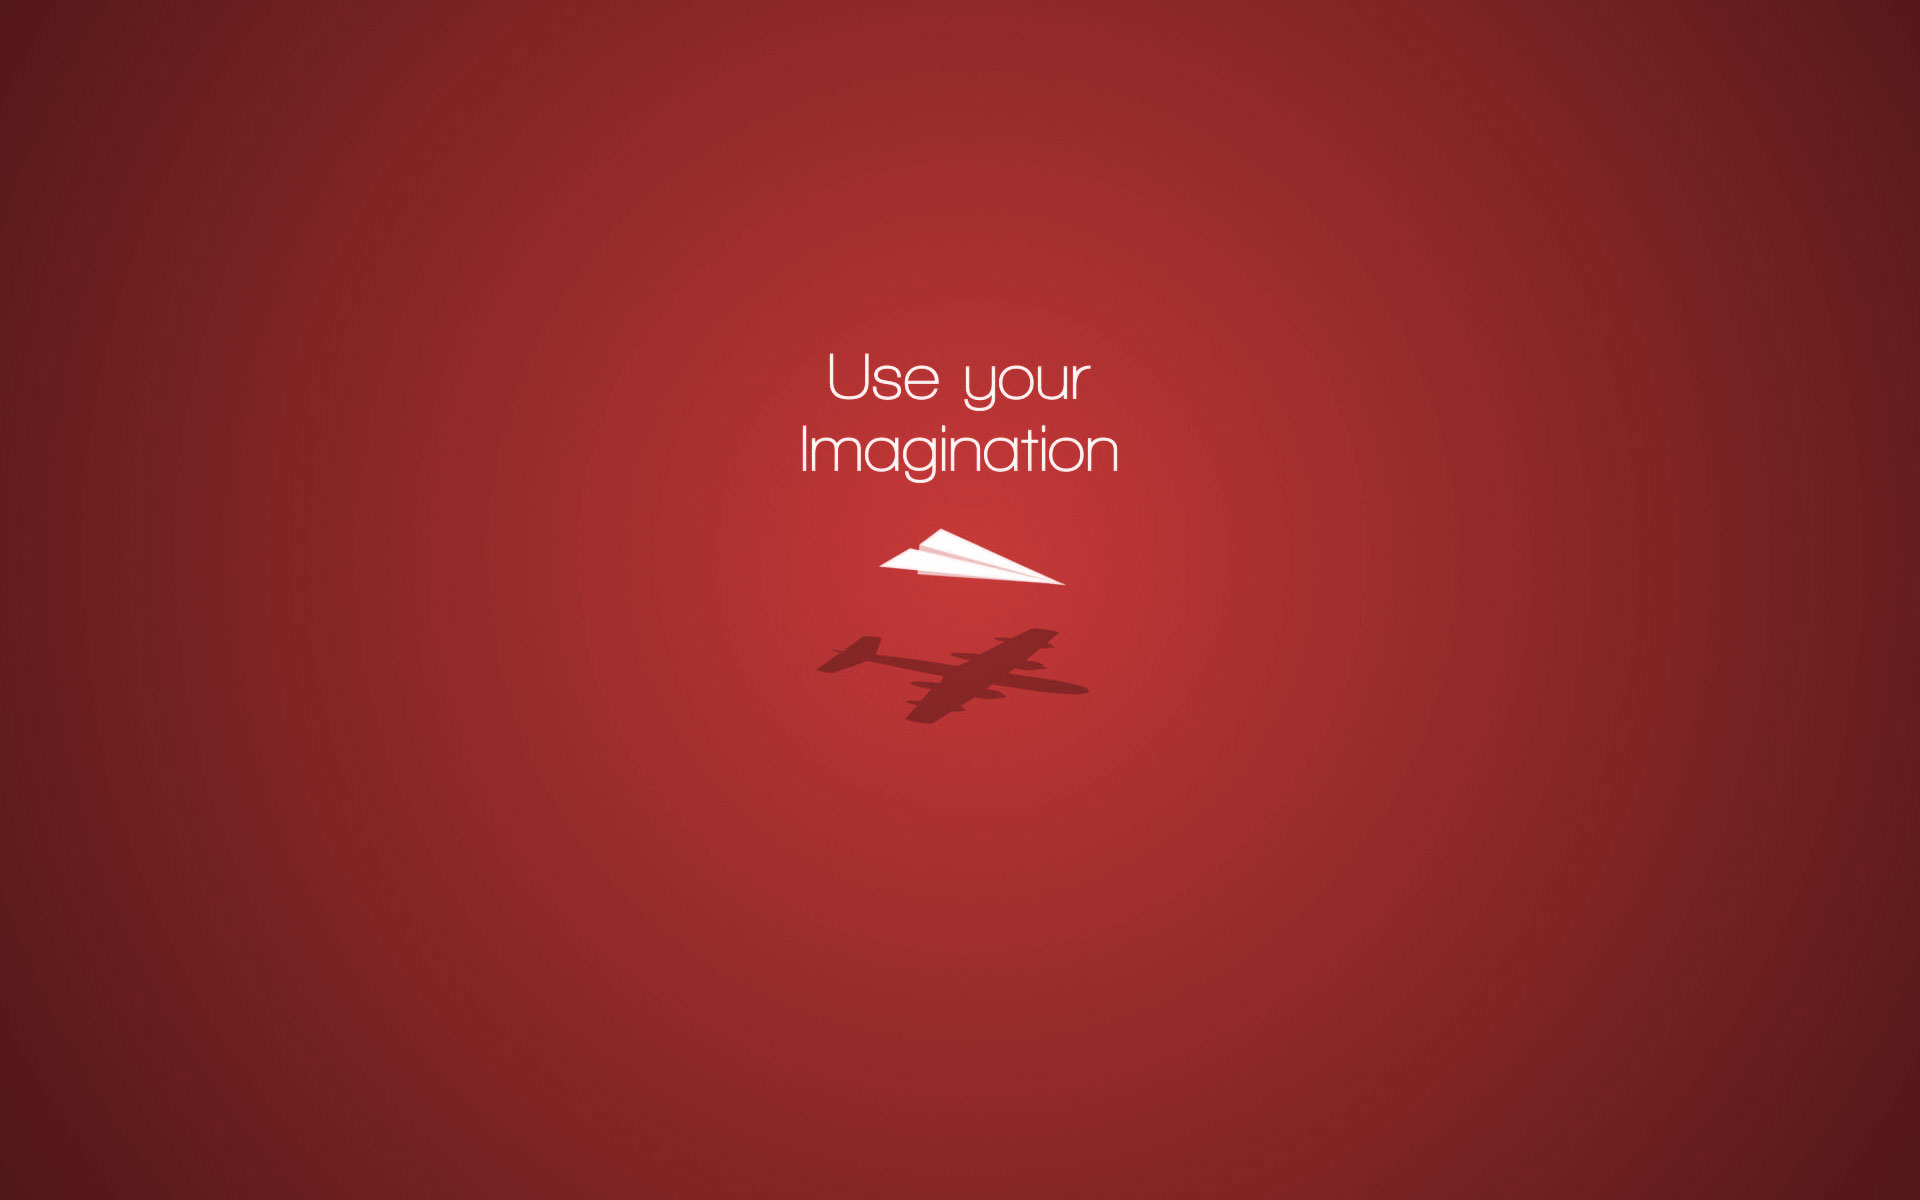 Download Inspirational Wallpapers Gallery